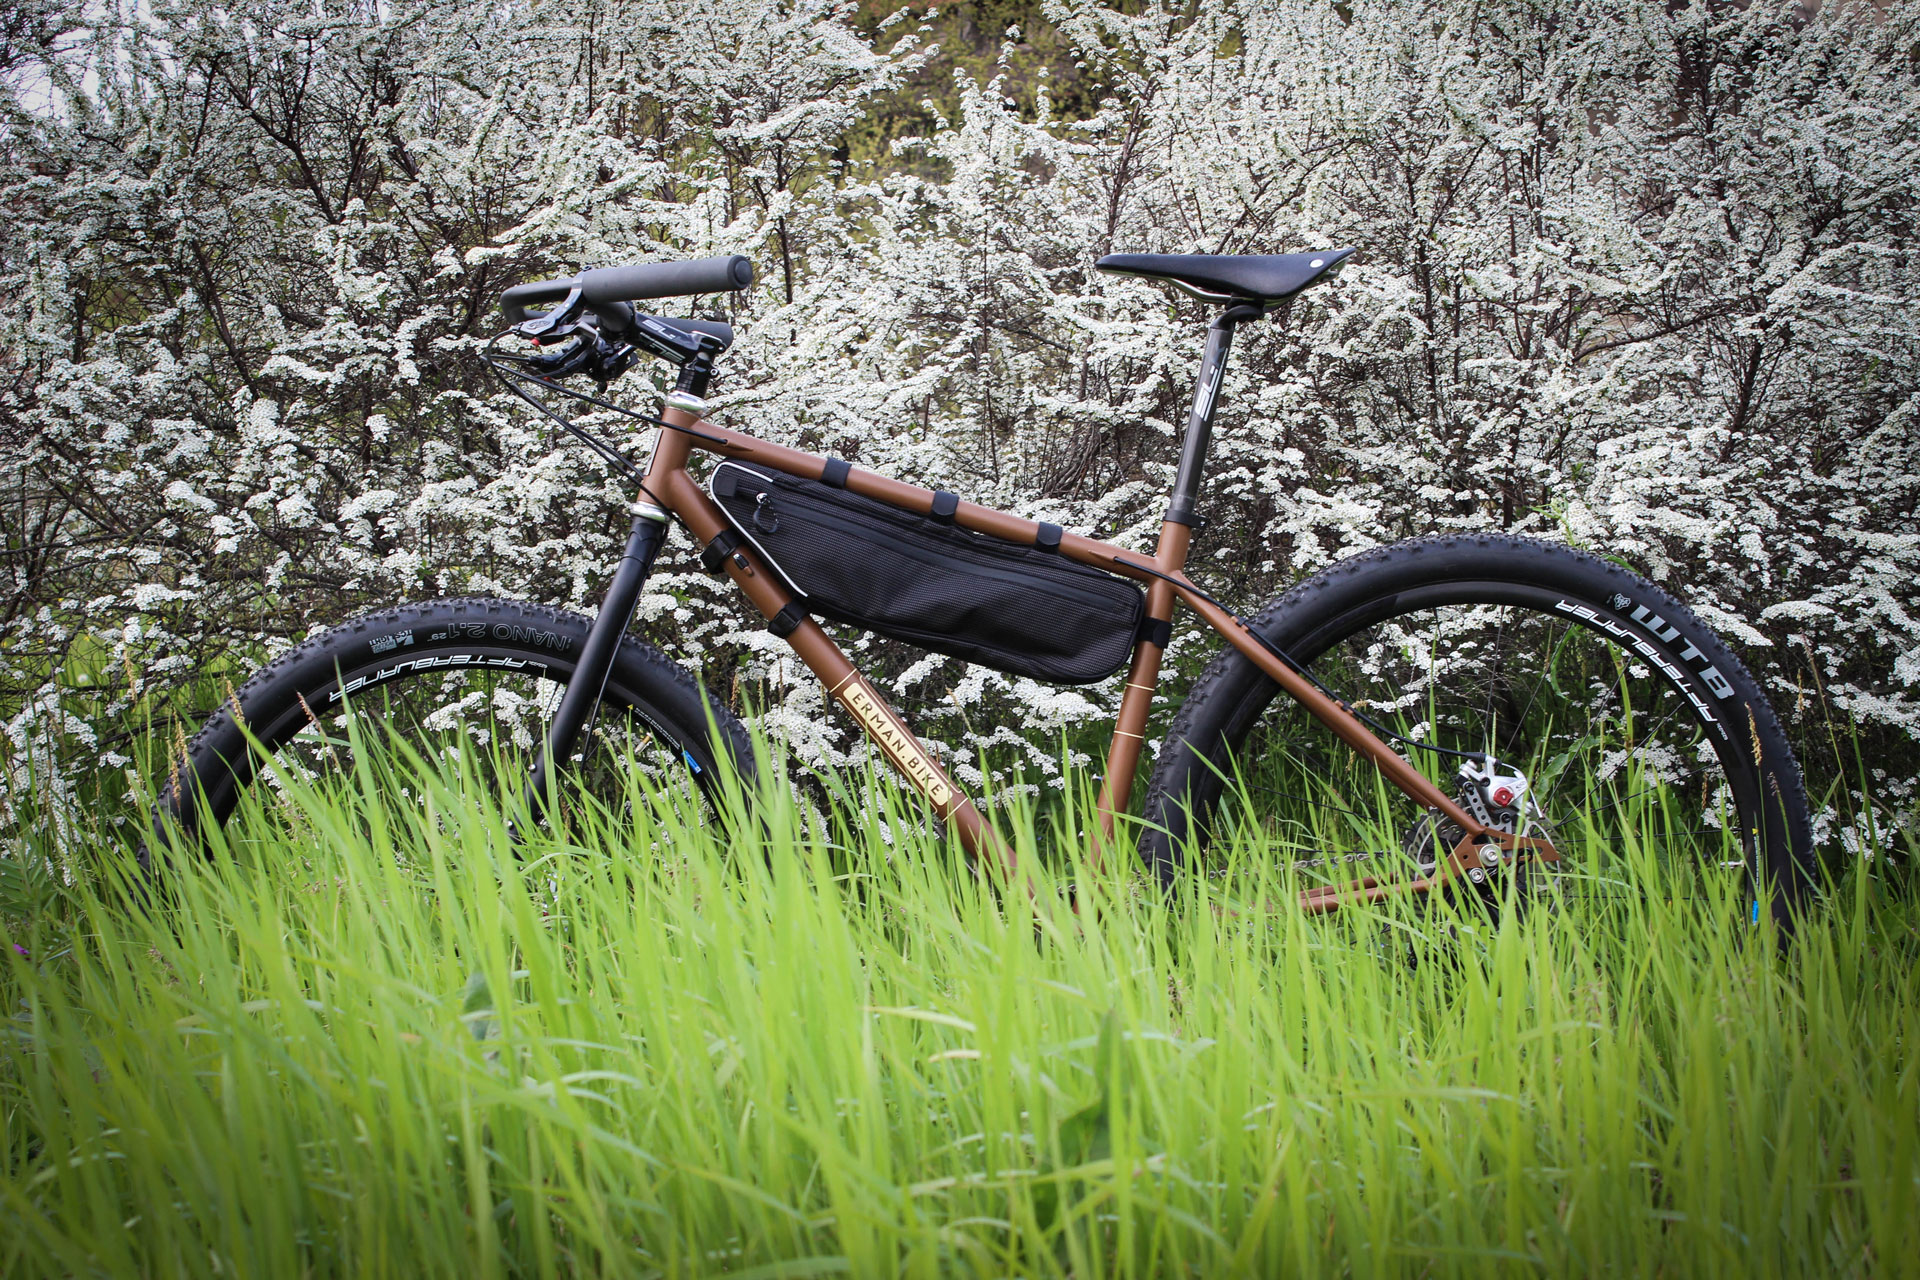 mondo adventure bikepacking handmade bicycle modena erman.bike erman bike erman